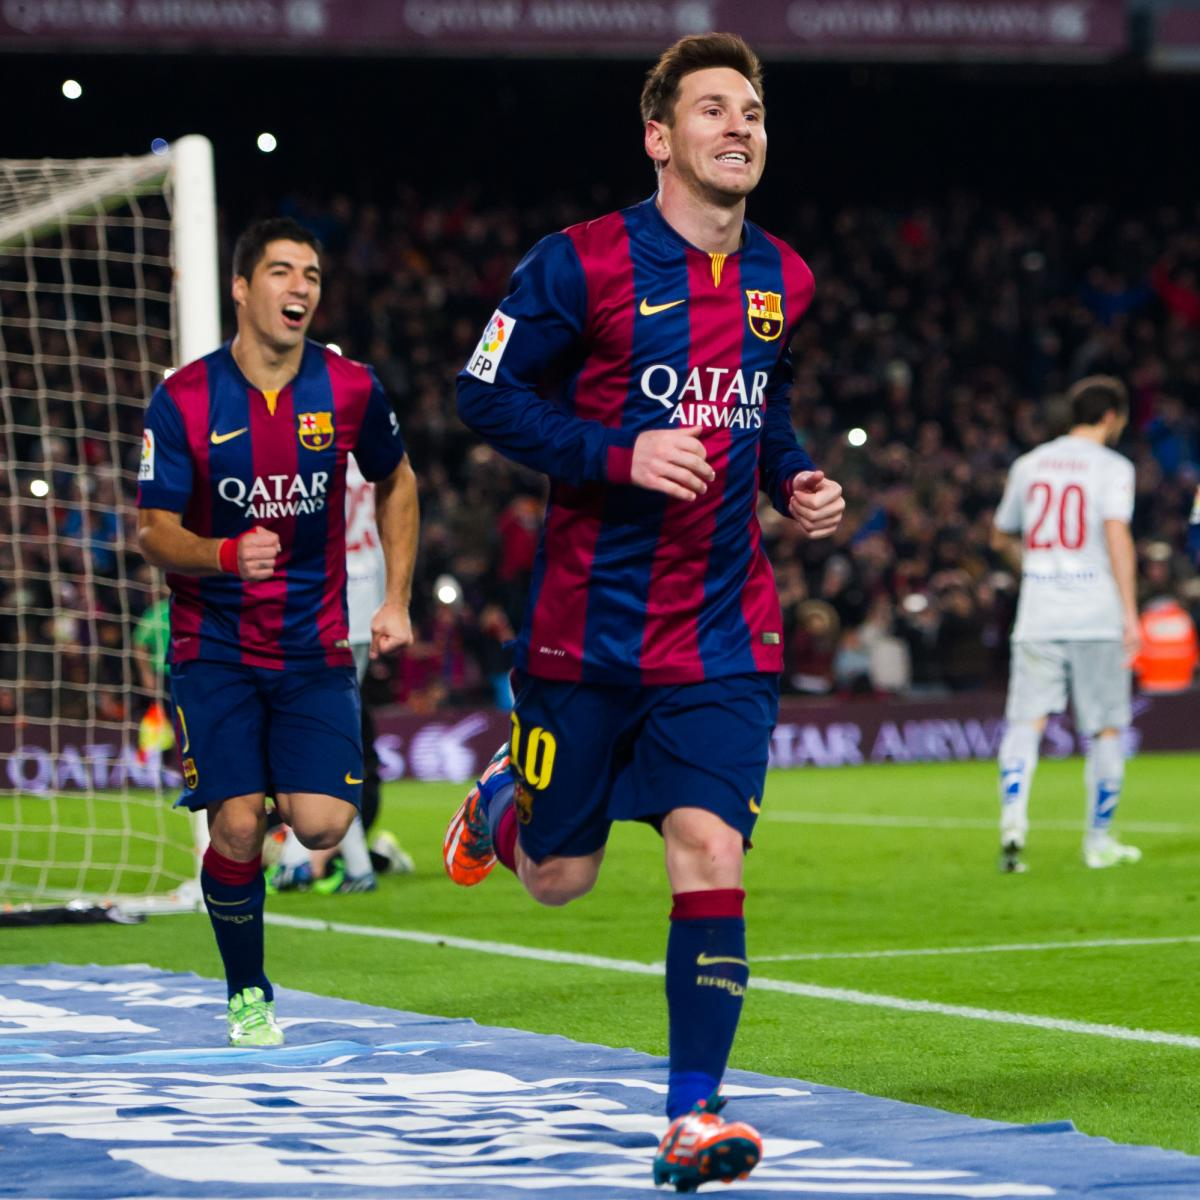 La liga results 2015 week 21 tracking final scores top - La liga latest results and table ...